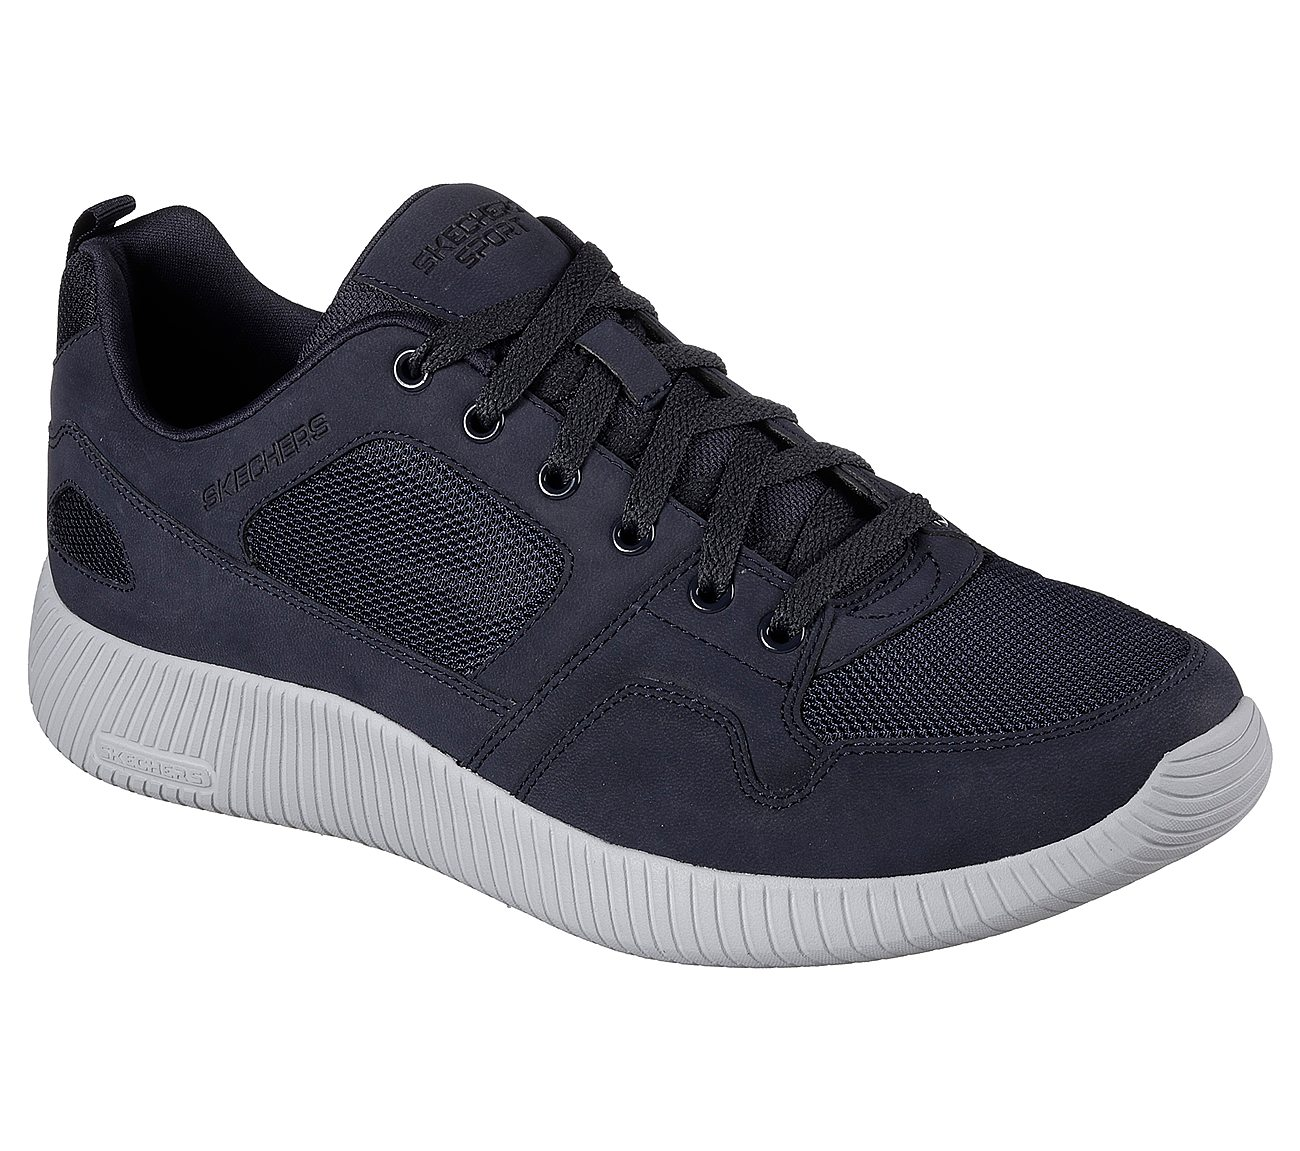 154a48a4366f9 Buy SKECHERS Depth Charge - Eaddy Lace-Up Sneakers Shoes only £59.00